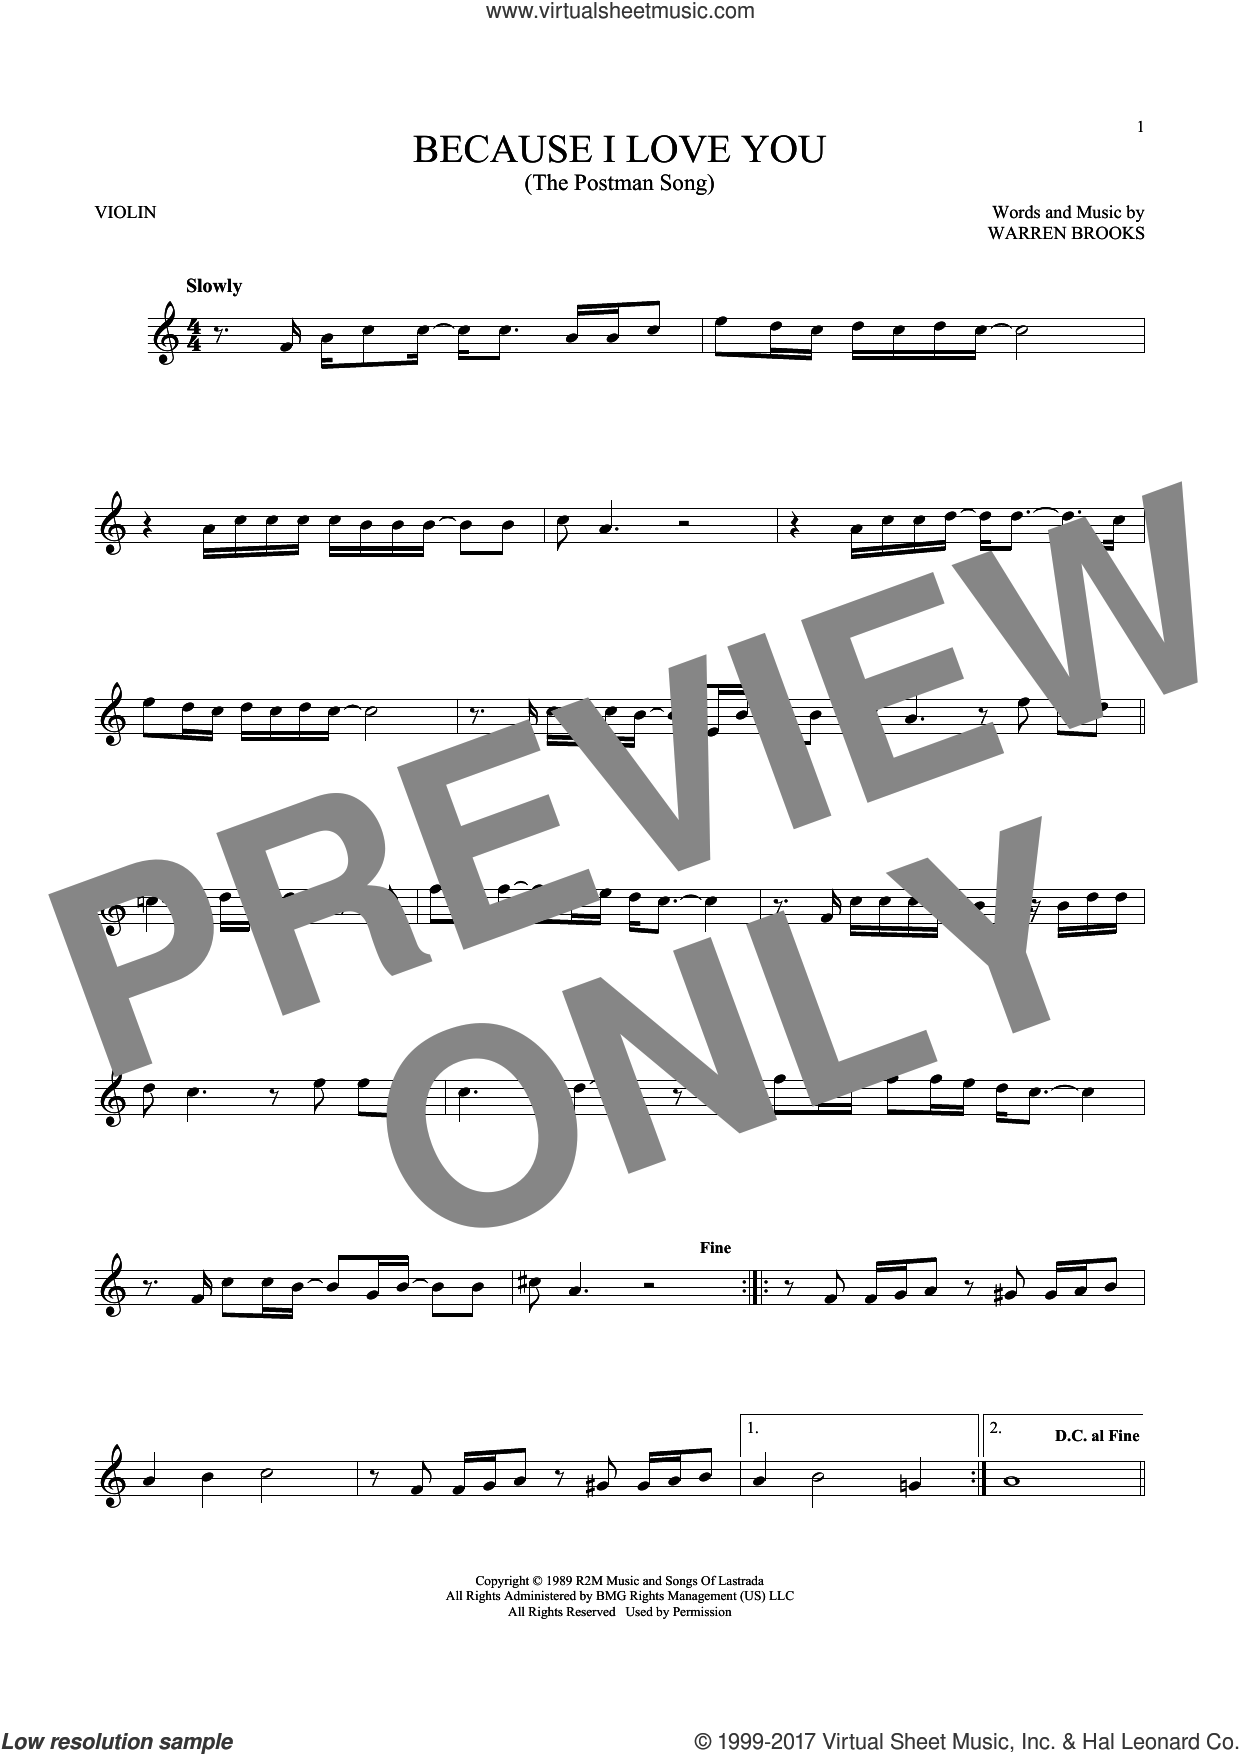 Because I Love You (The Postman Song) sheet music for violin solo by Stevie B and Warren Brooks, intermediate skill level